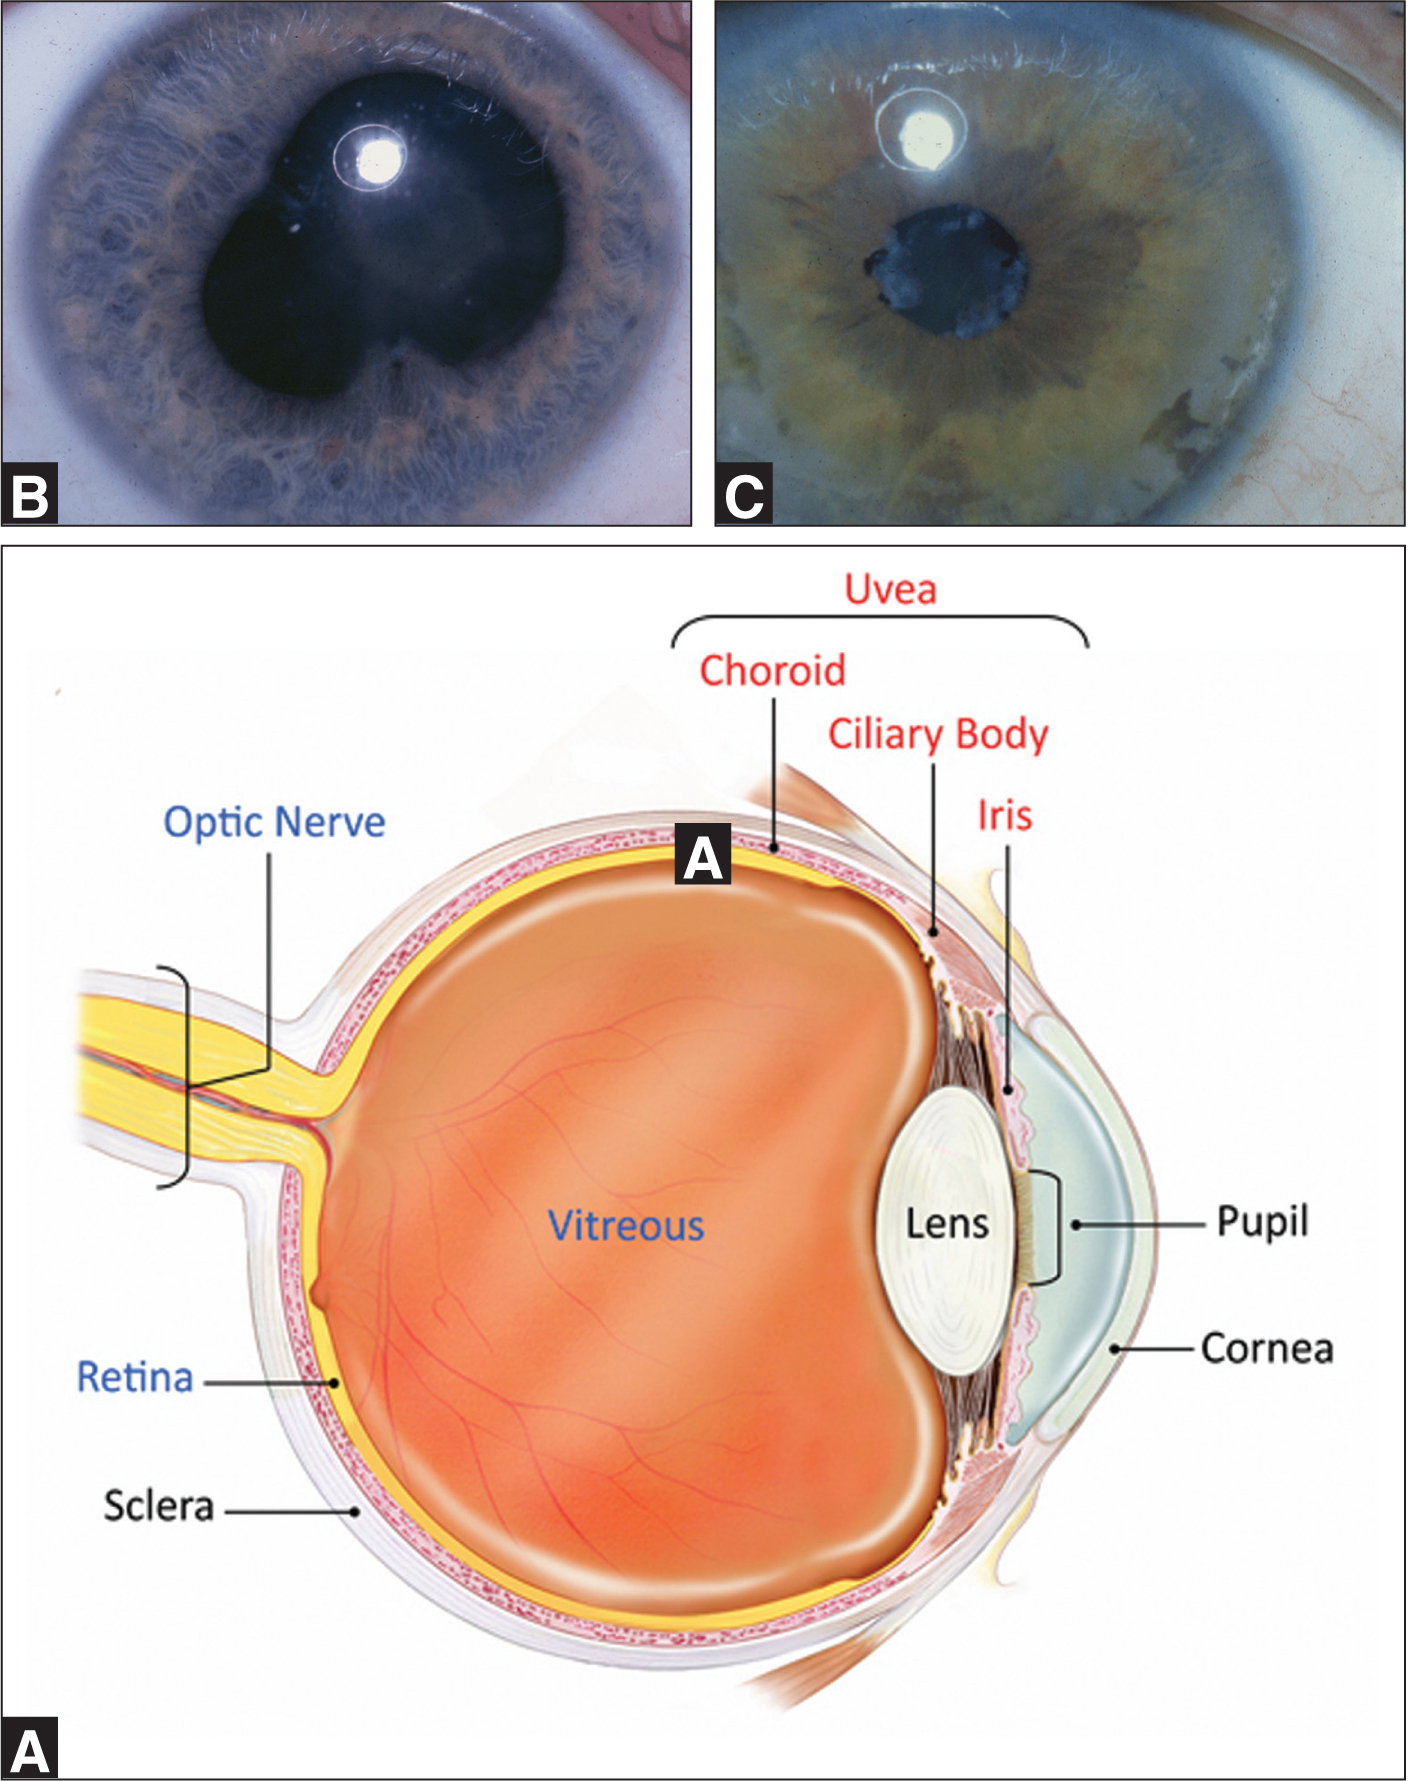 (A) Schematic of the eye. The uvea/anterior chamber is most often affected in juvenile idiopathic arthritis. Major complications of uveitis include (B) synechiae and (C) band keratopathy. It is a routine part of each pediatric rheumatology follow-up visit to check for these complications. Screening guidelines for uveitis in juvenile idiopathic arthritis have been put forth by the American Academy of Pediatrics.16Images courtesy of National Eye Institute, National Institutes of Health. Reprinted with permission.